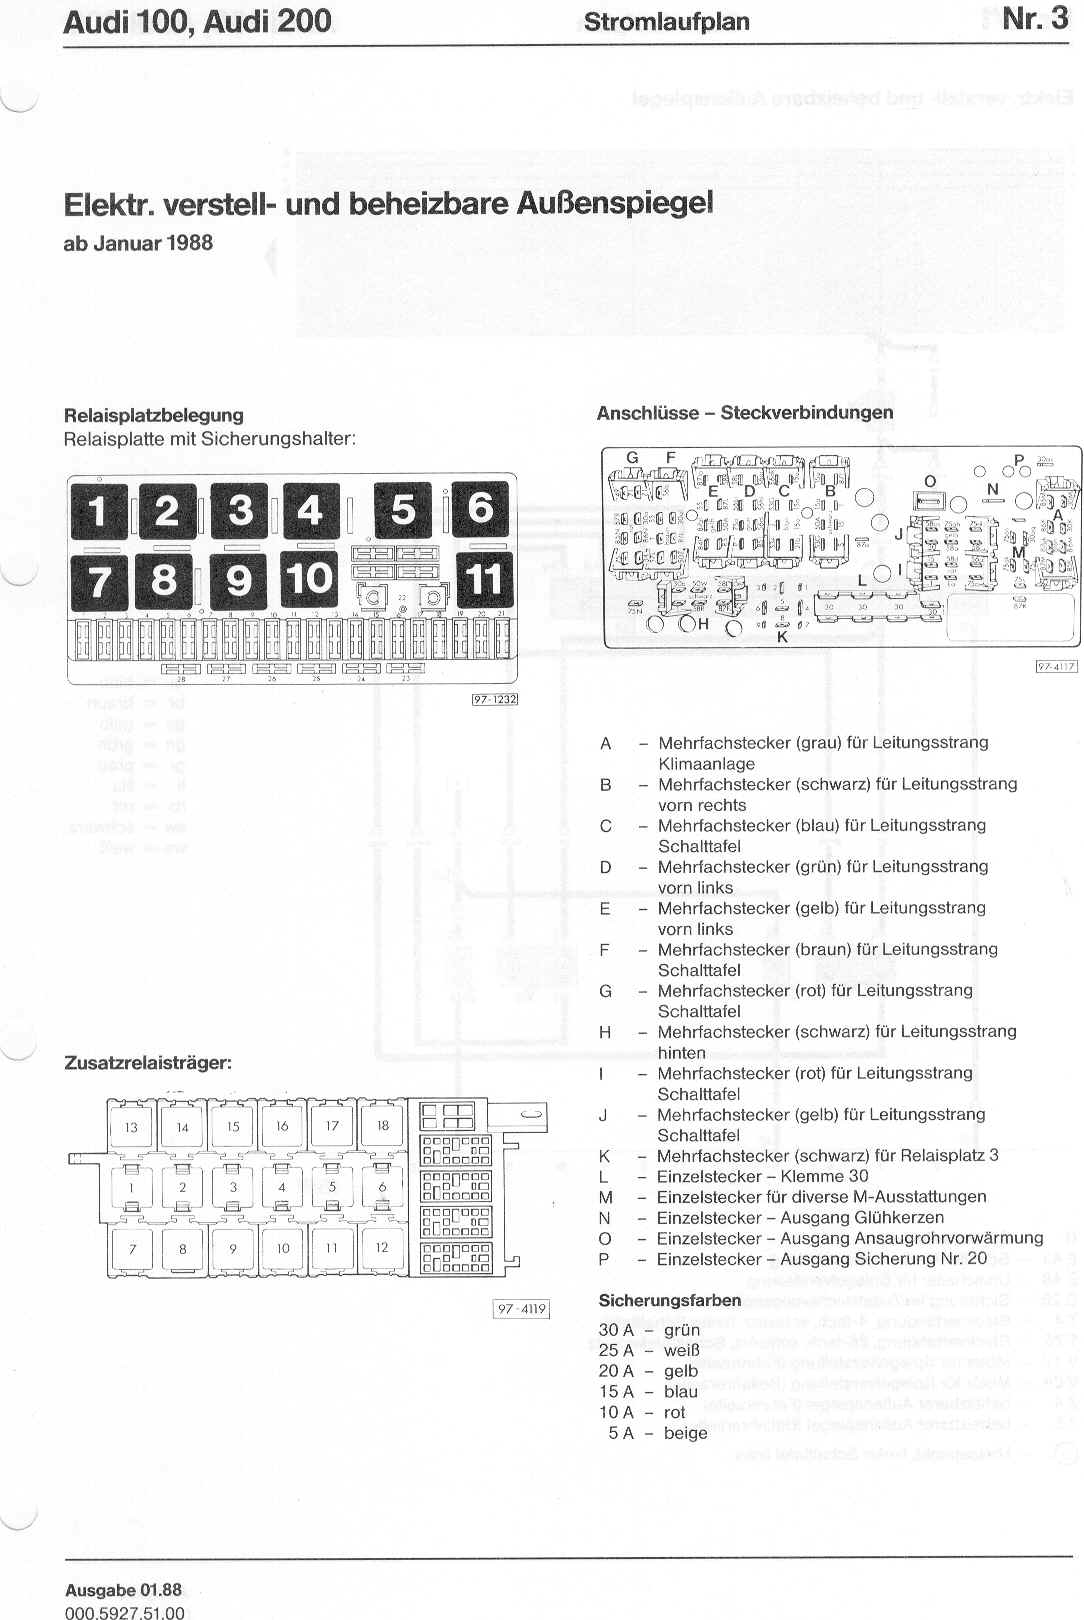 1988 Audi 90 Wiring Diagram Opinions About 1az Ecm Wire 2003 100 200 Factory Diagrams Rh Sizov Org 1998 A4 Fuse Box Location